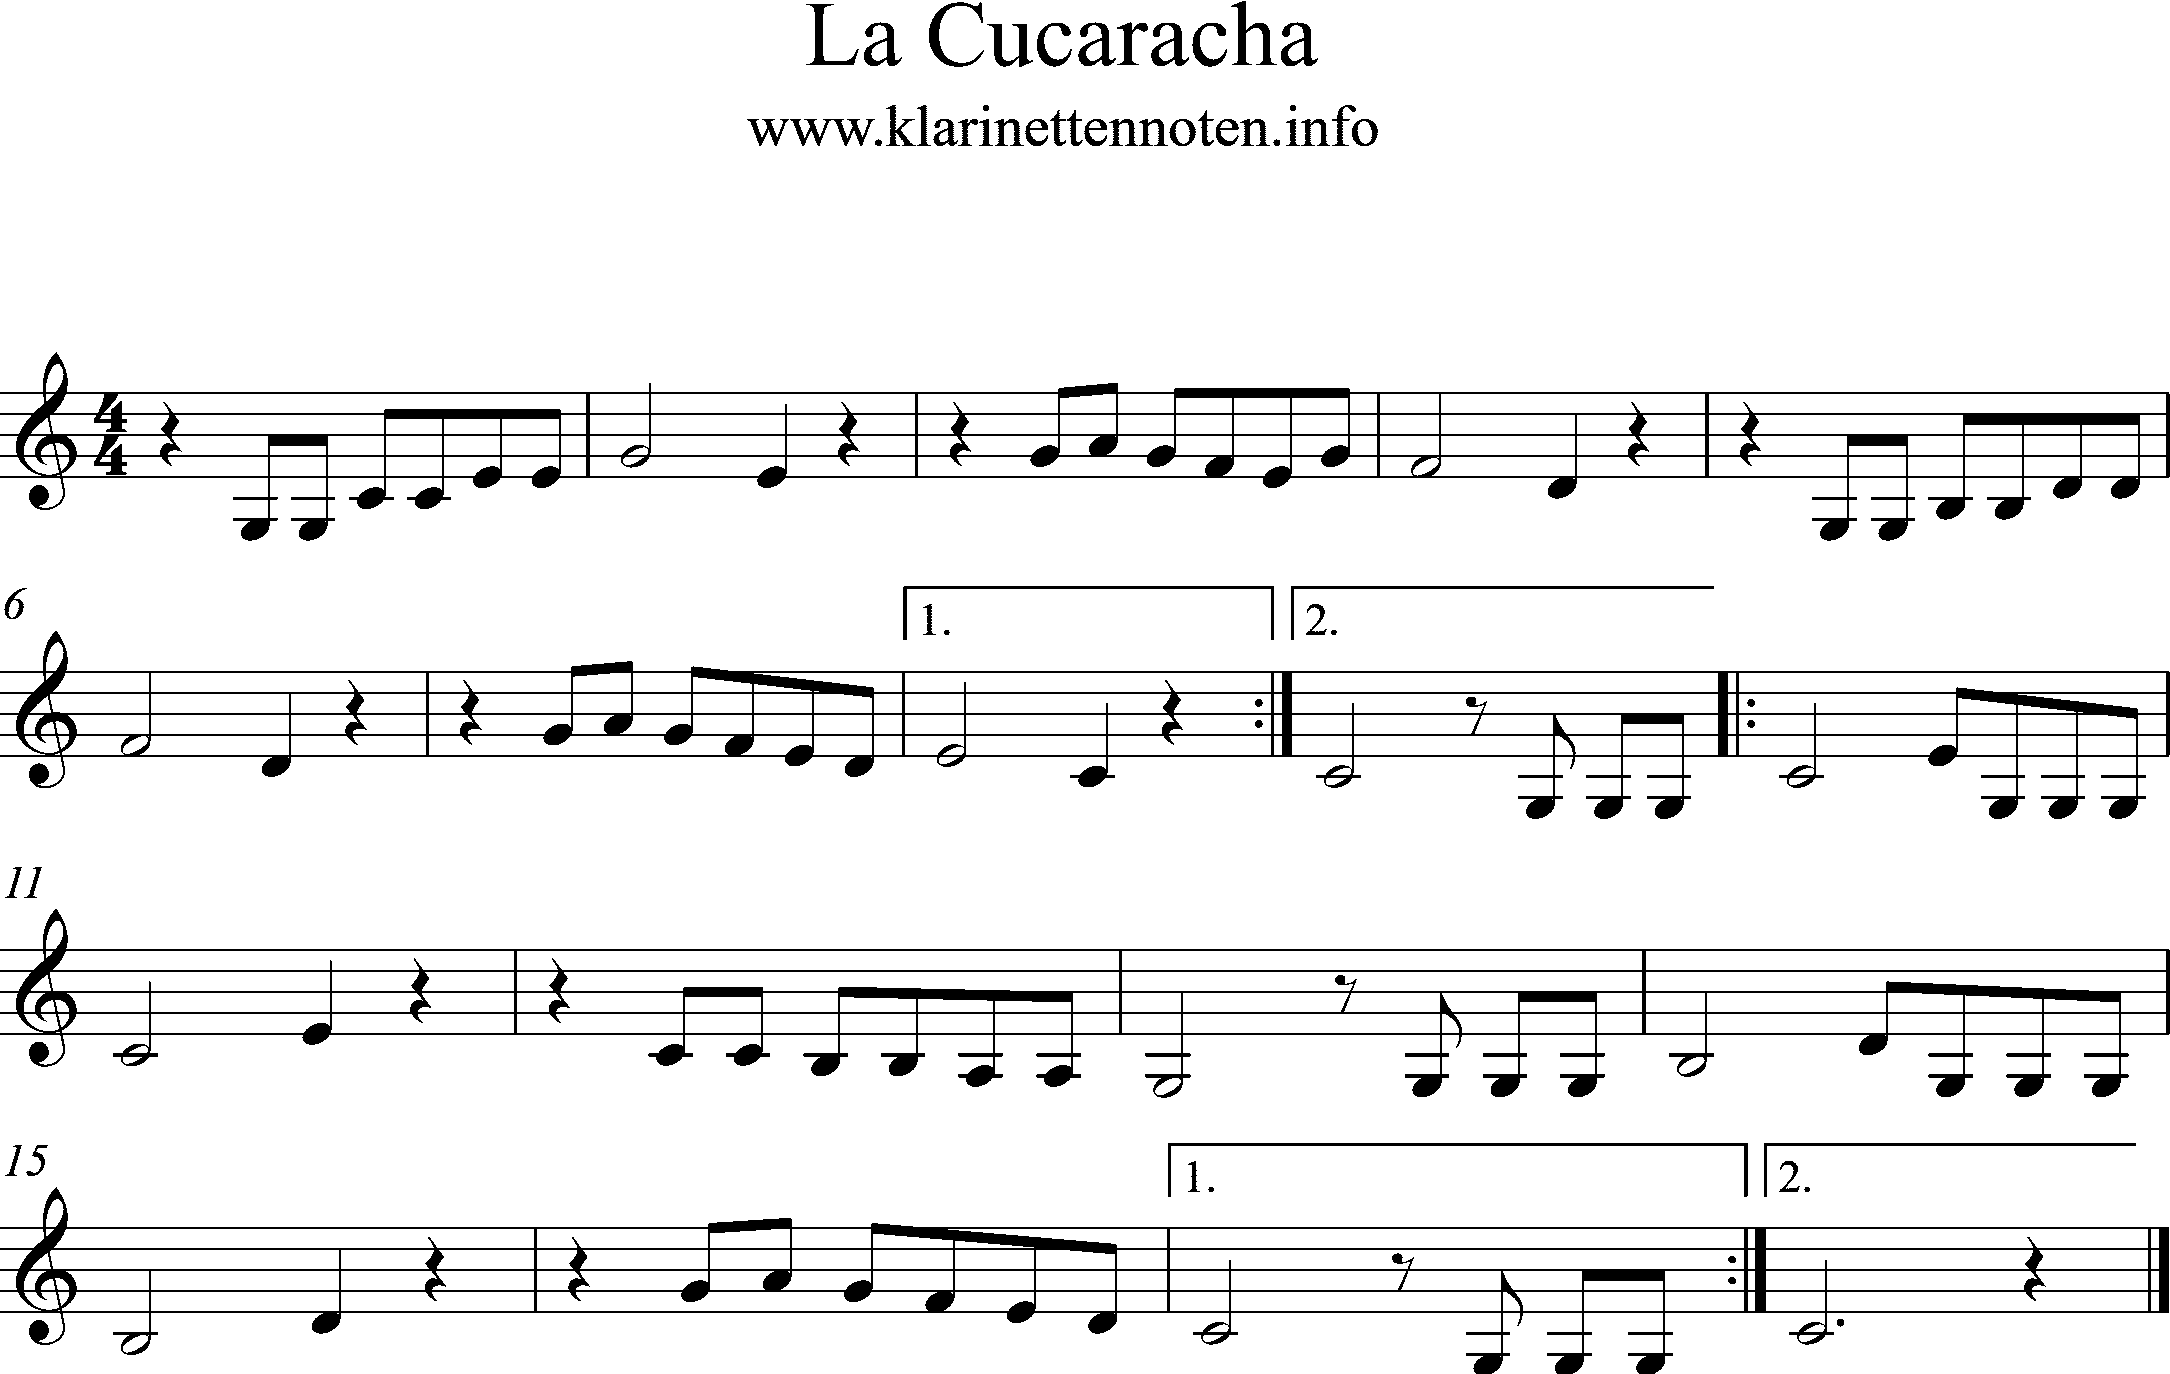 Noten La Cucaracha -Clarinet Easy